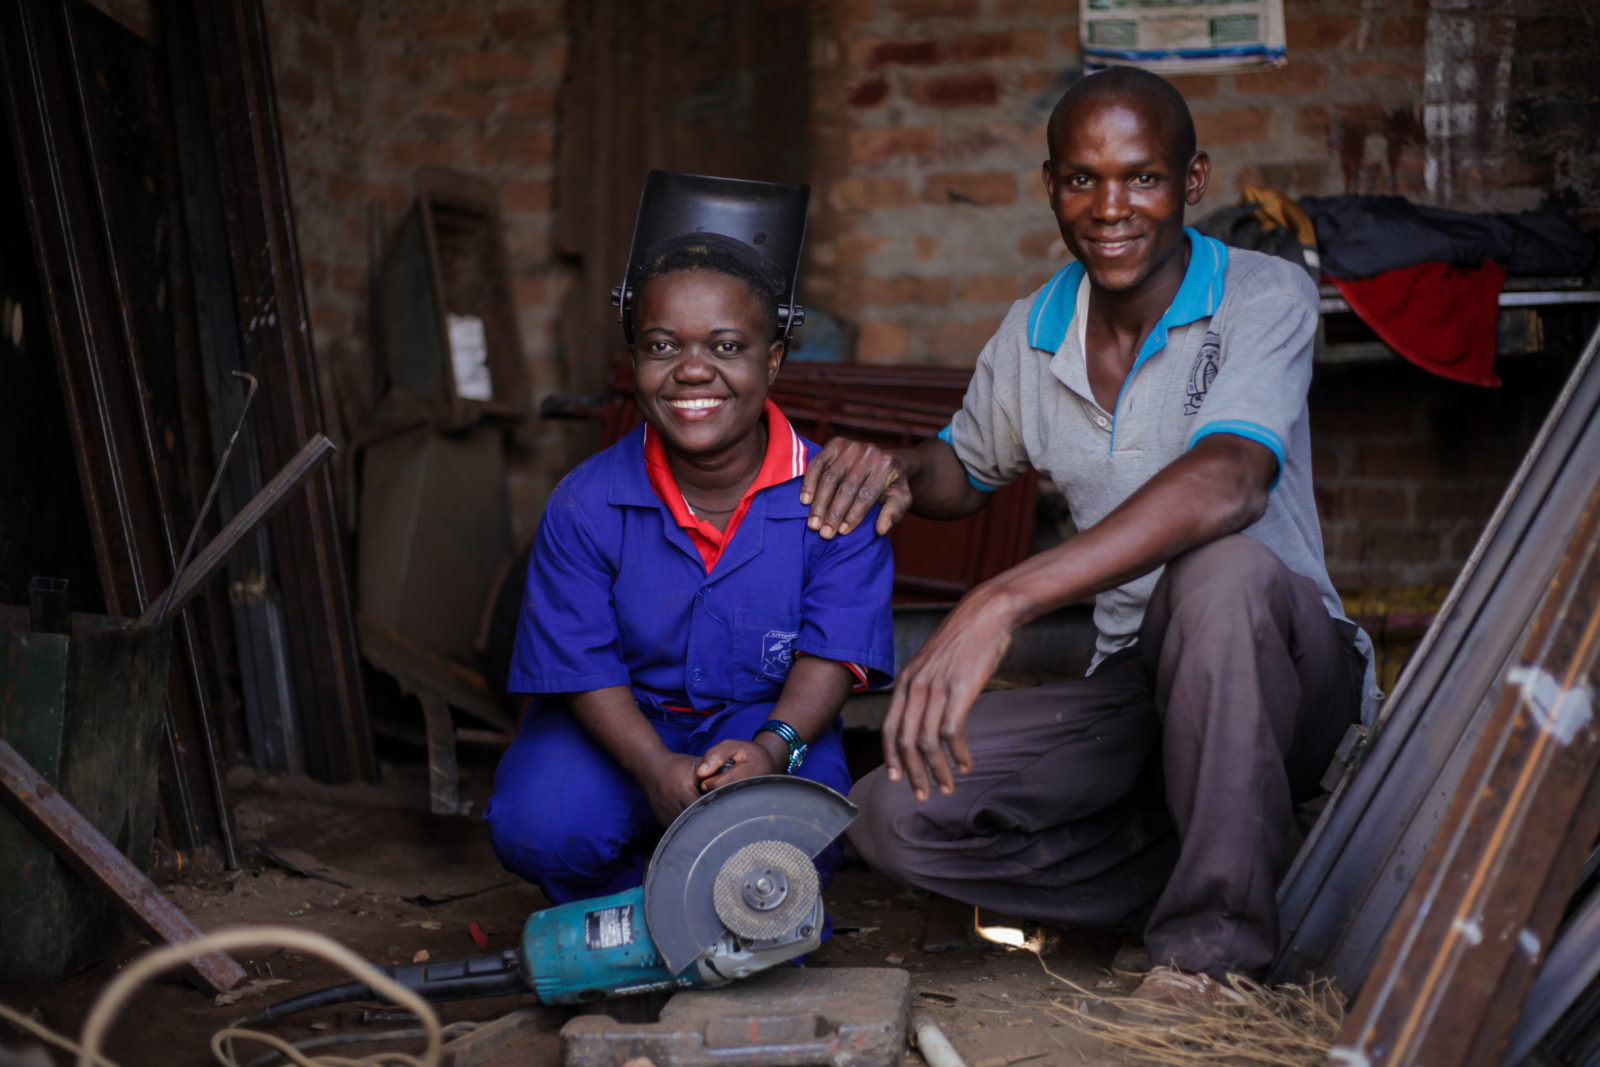 Friday Rosemary a beneficiary of Sightsavers Economic Empowerment Project, photographed with her trainer, at the shared welding workshop in Kiryandongo, Uganda.